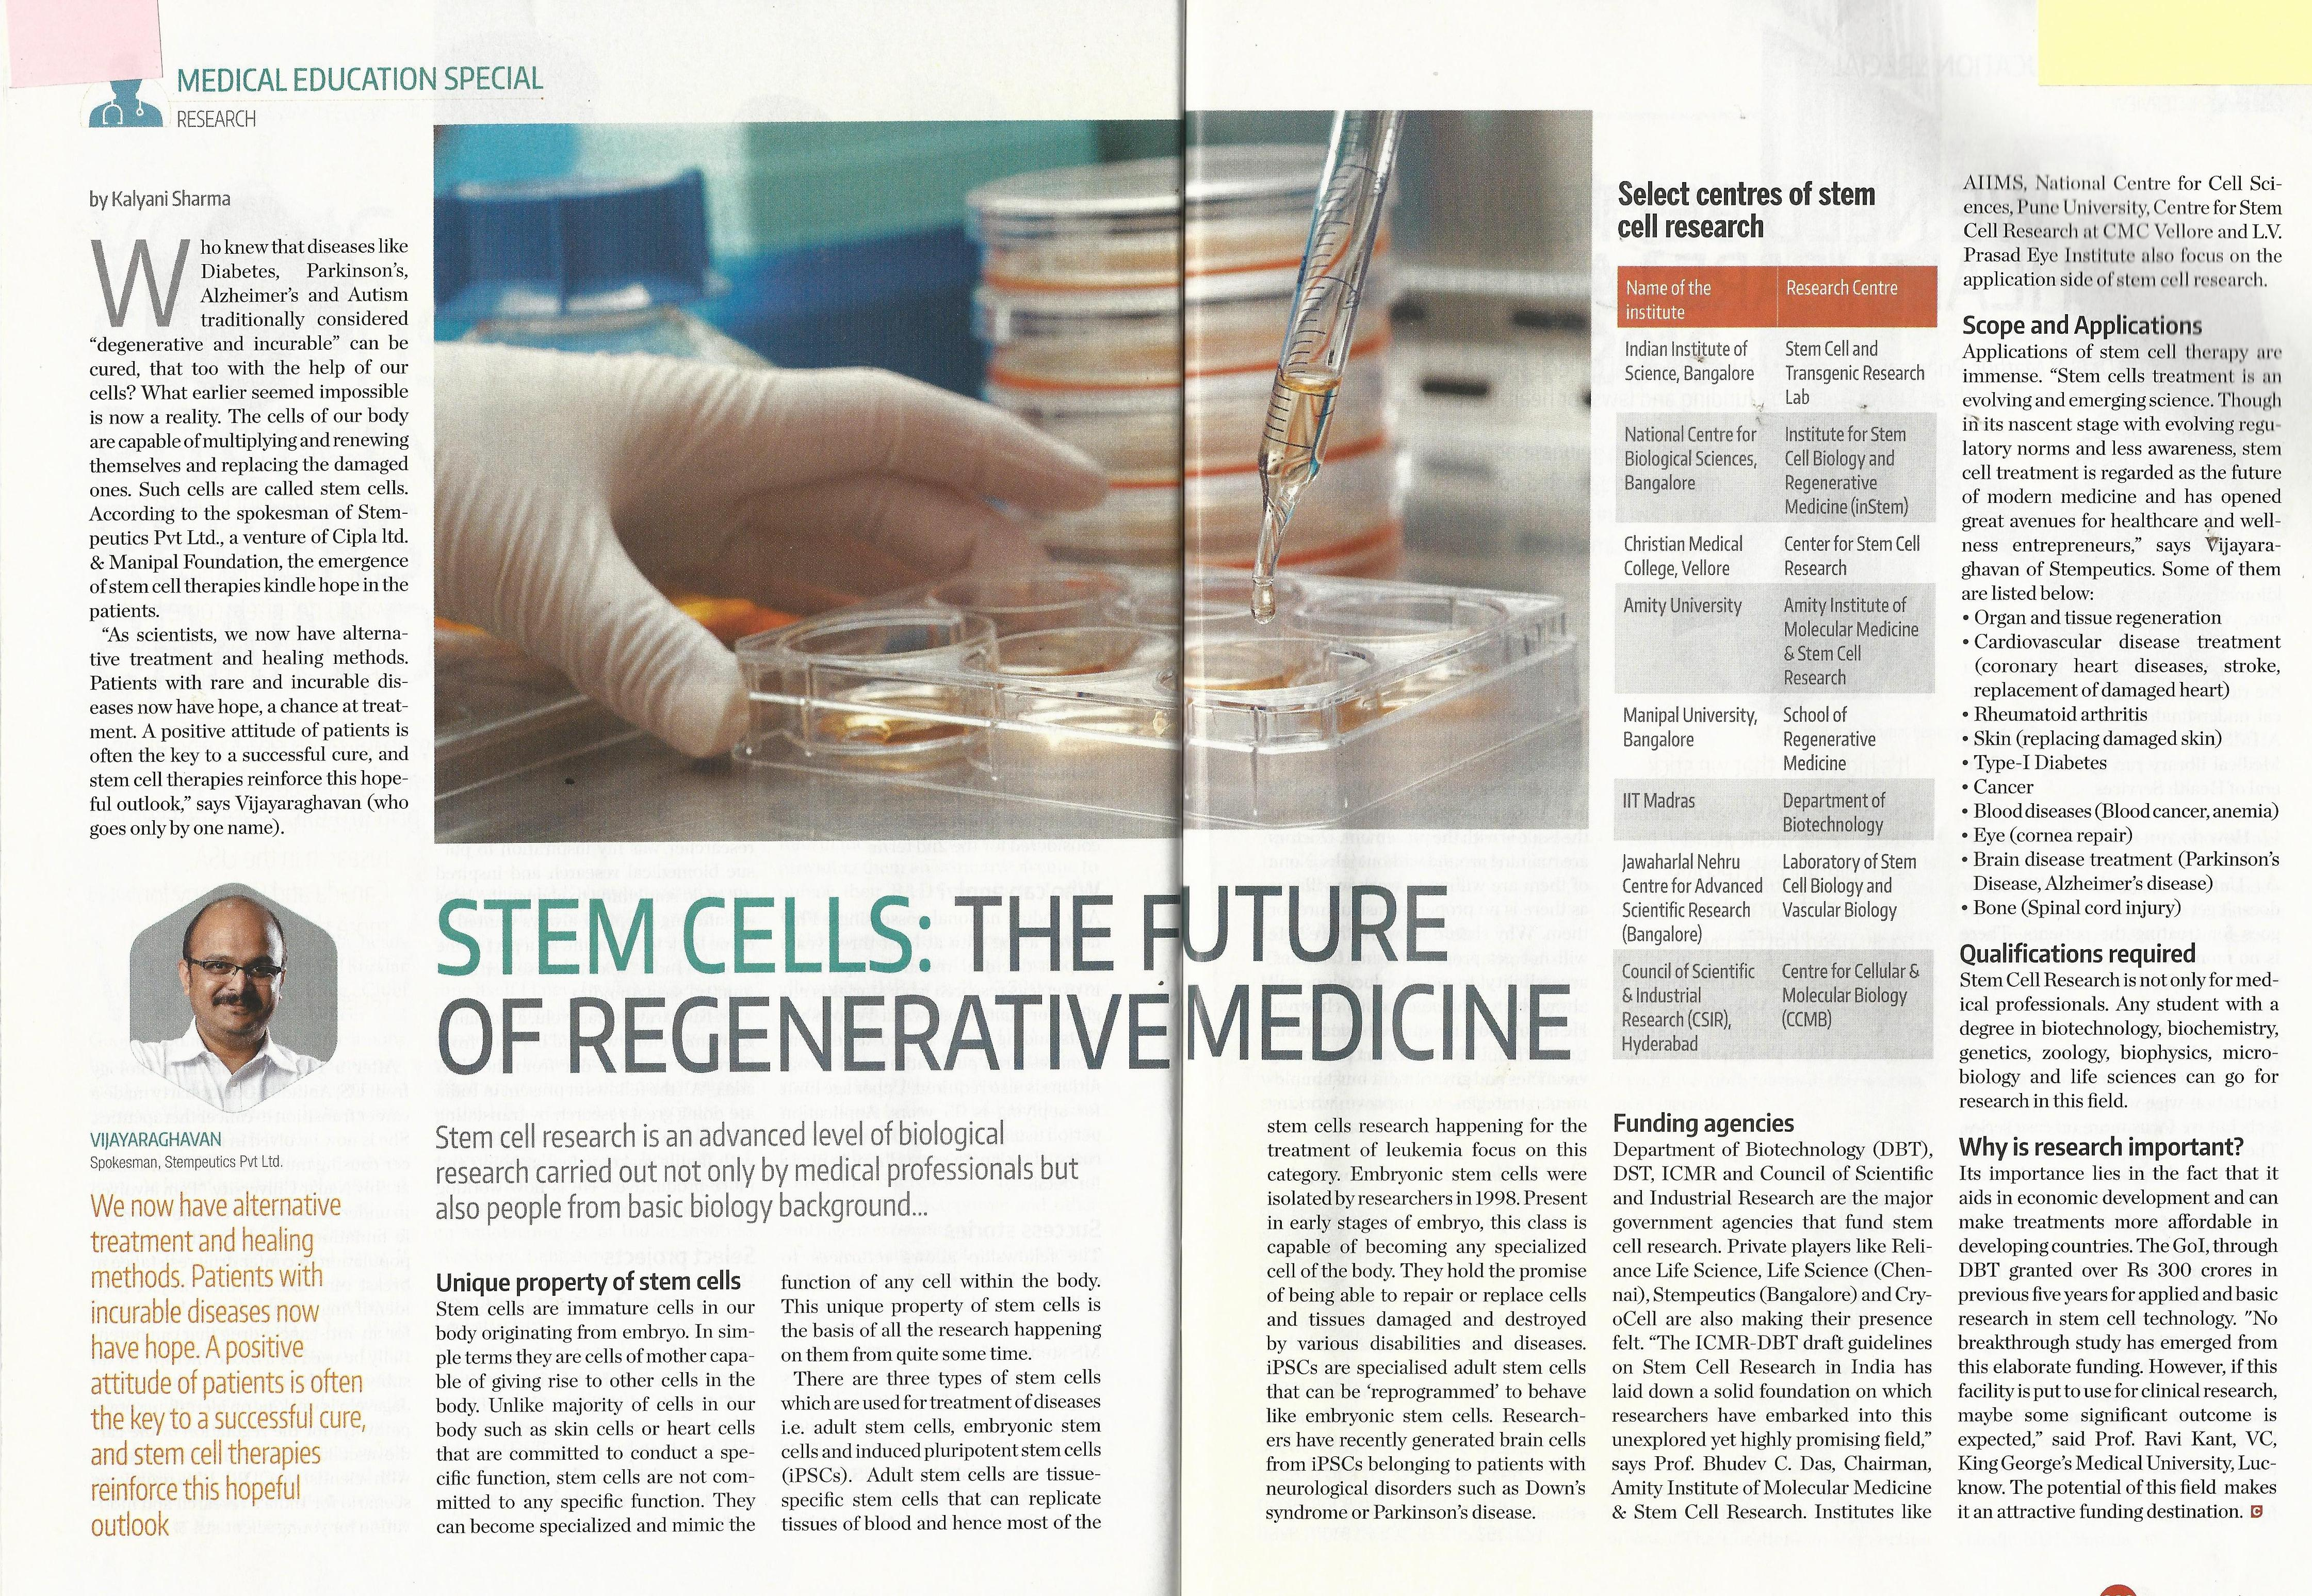 Stem Cell: The Future of Regenerative Medicine- Quote of Prof